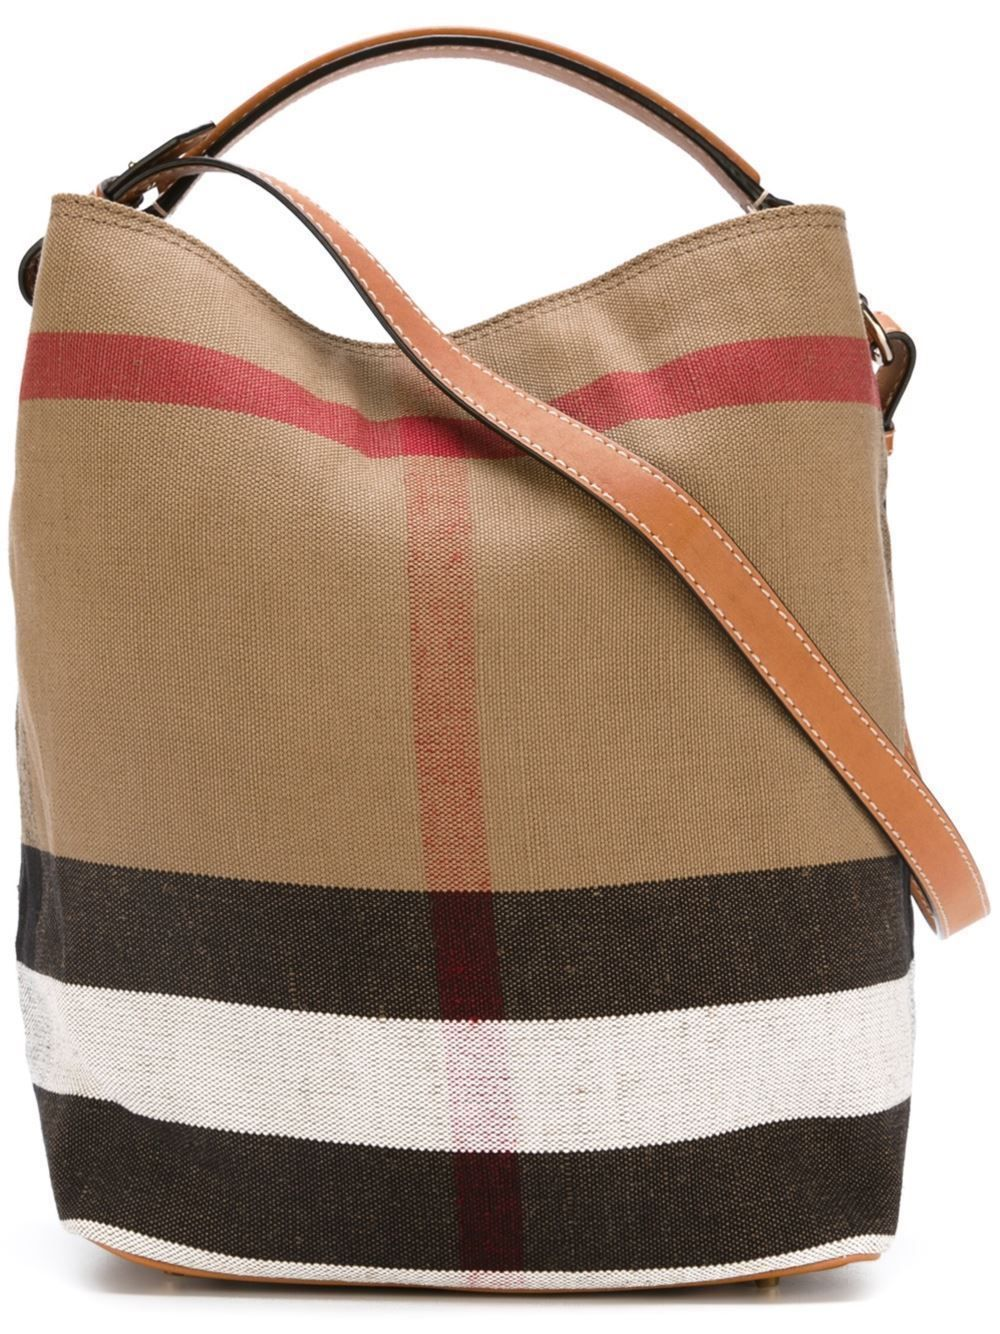 c6c034d40437 Authentic Burberry Medium Ashby in Canvas Check Leather Hobo Bag - Saddle  Brown